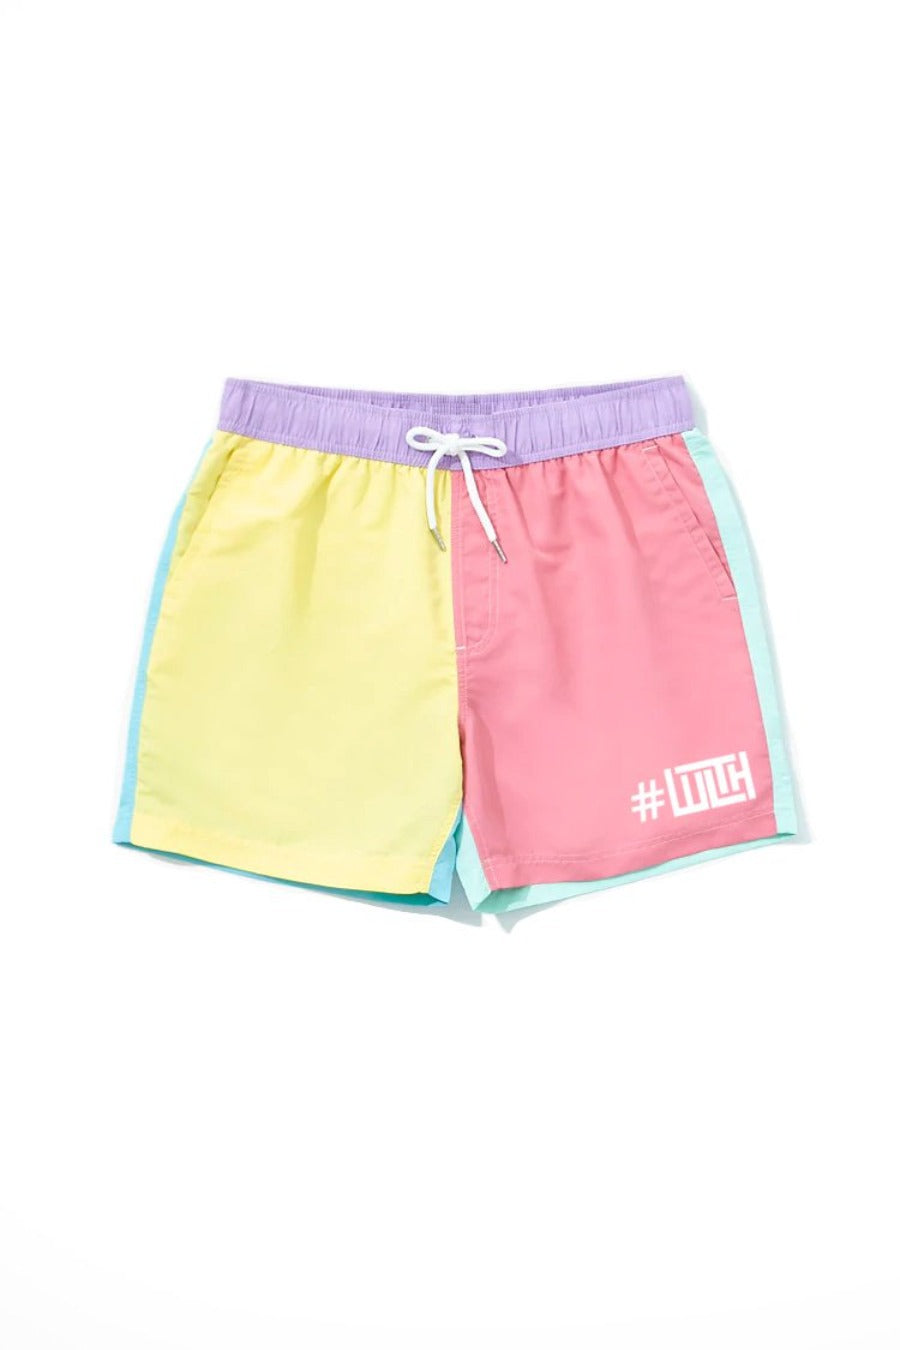 Multi-Color Pastel Shorts